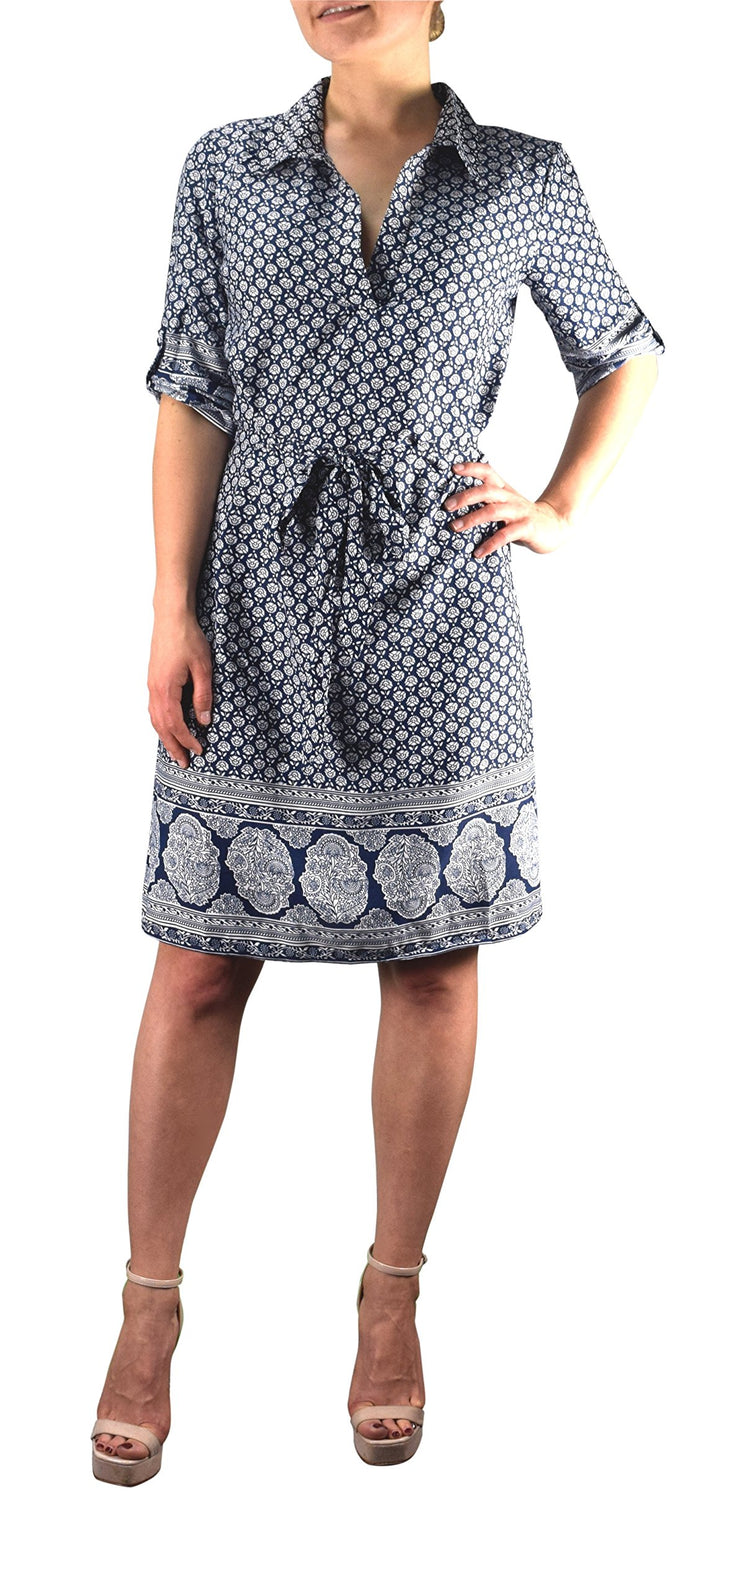 A6150-PC-Shift-Dress